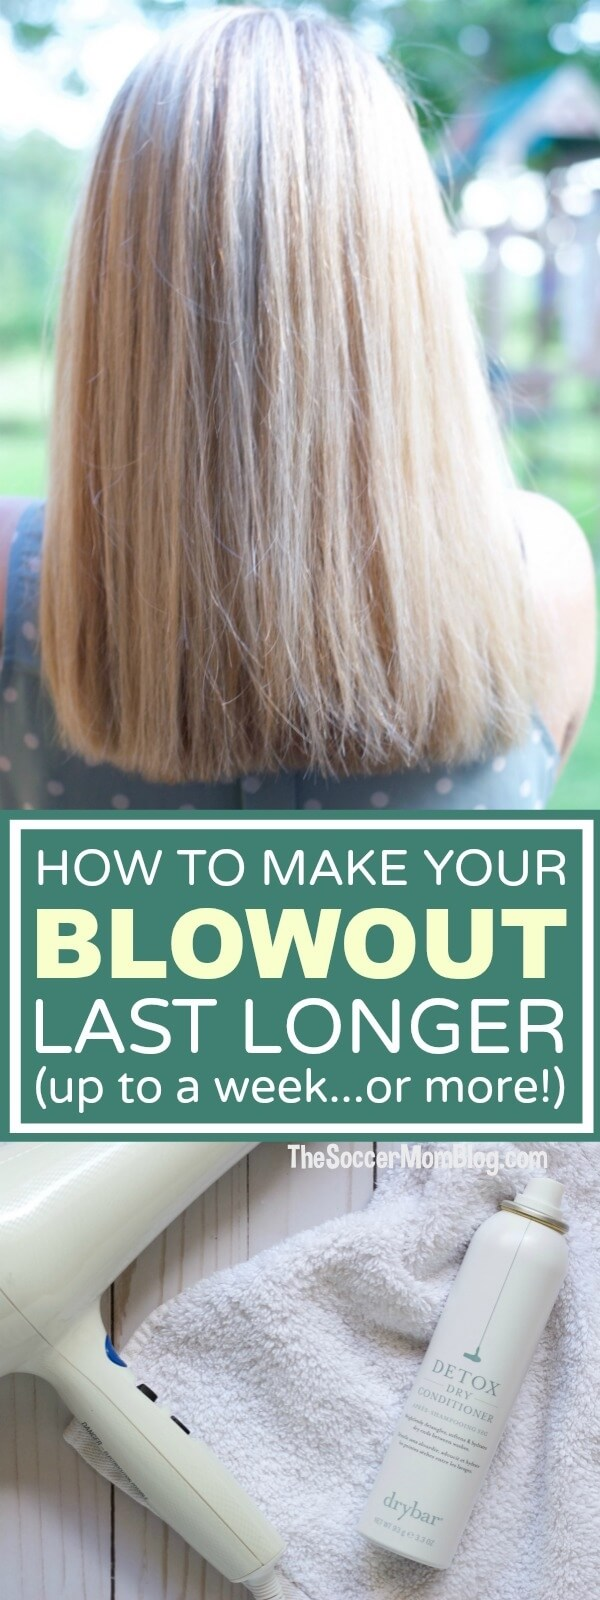 With these 6 hair hacks you'll be able to go longer between washes, keep your hair healthier, and make your blowout last longer, and be styled in seconds!